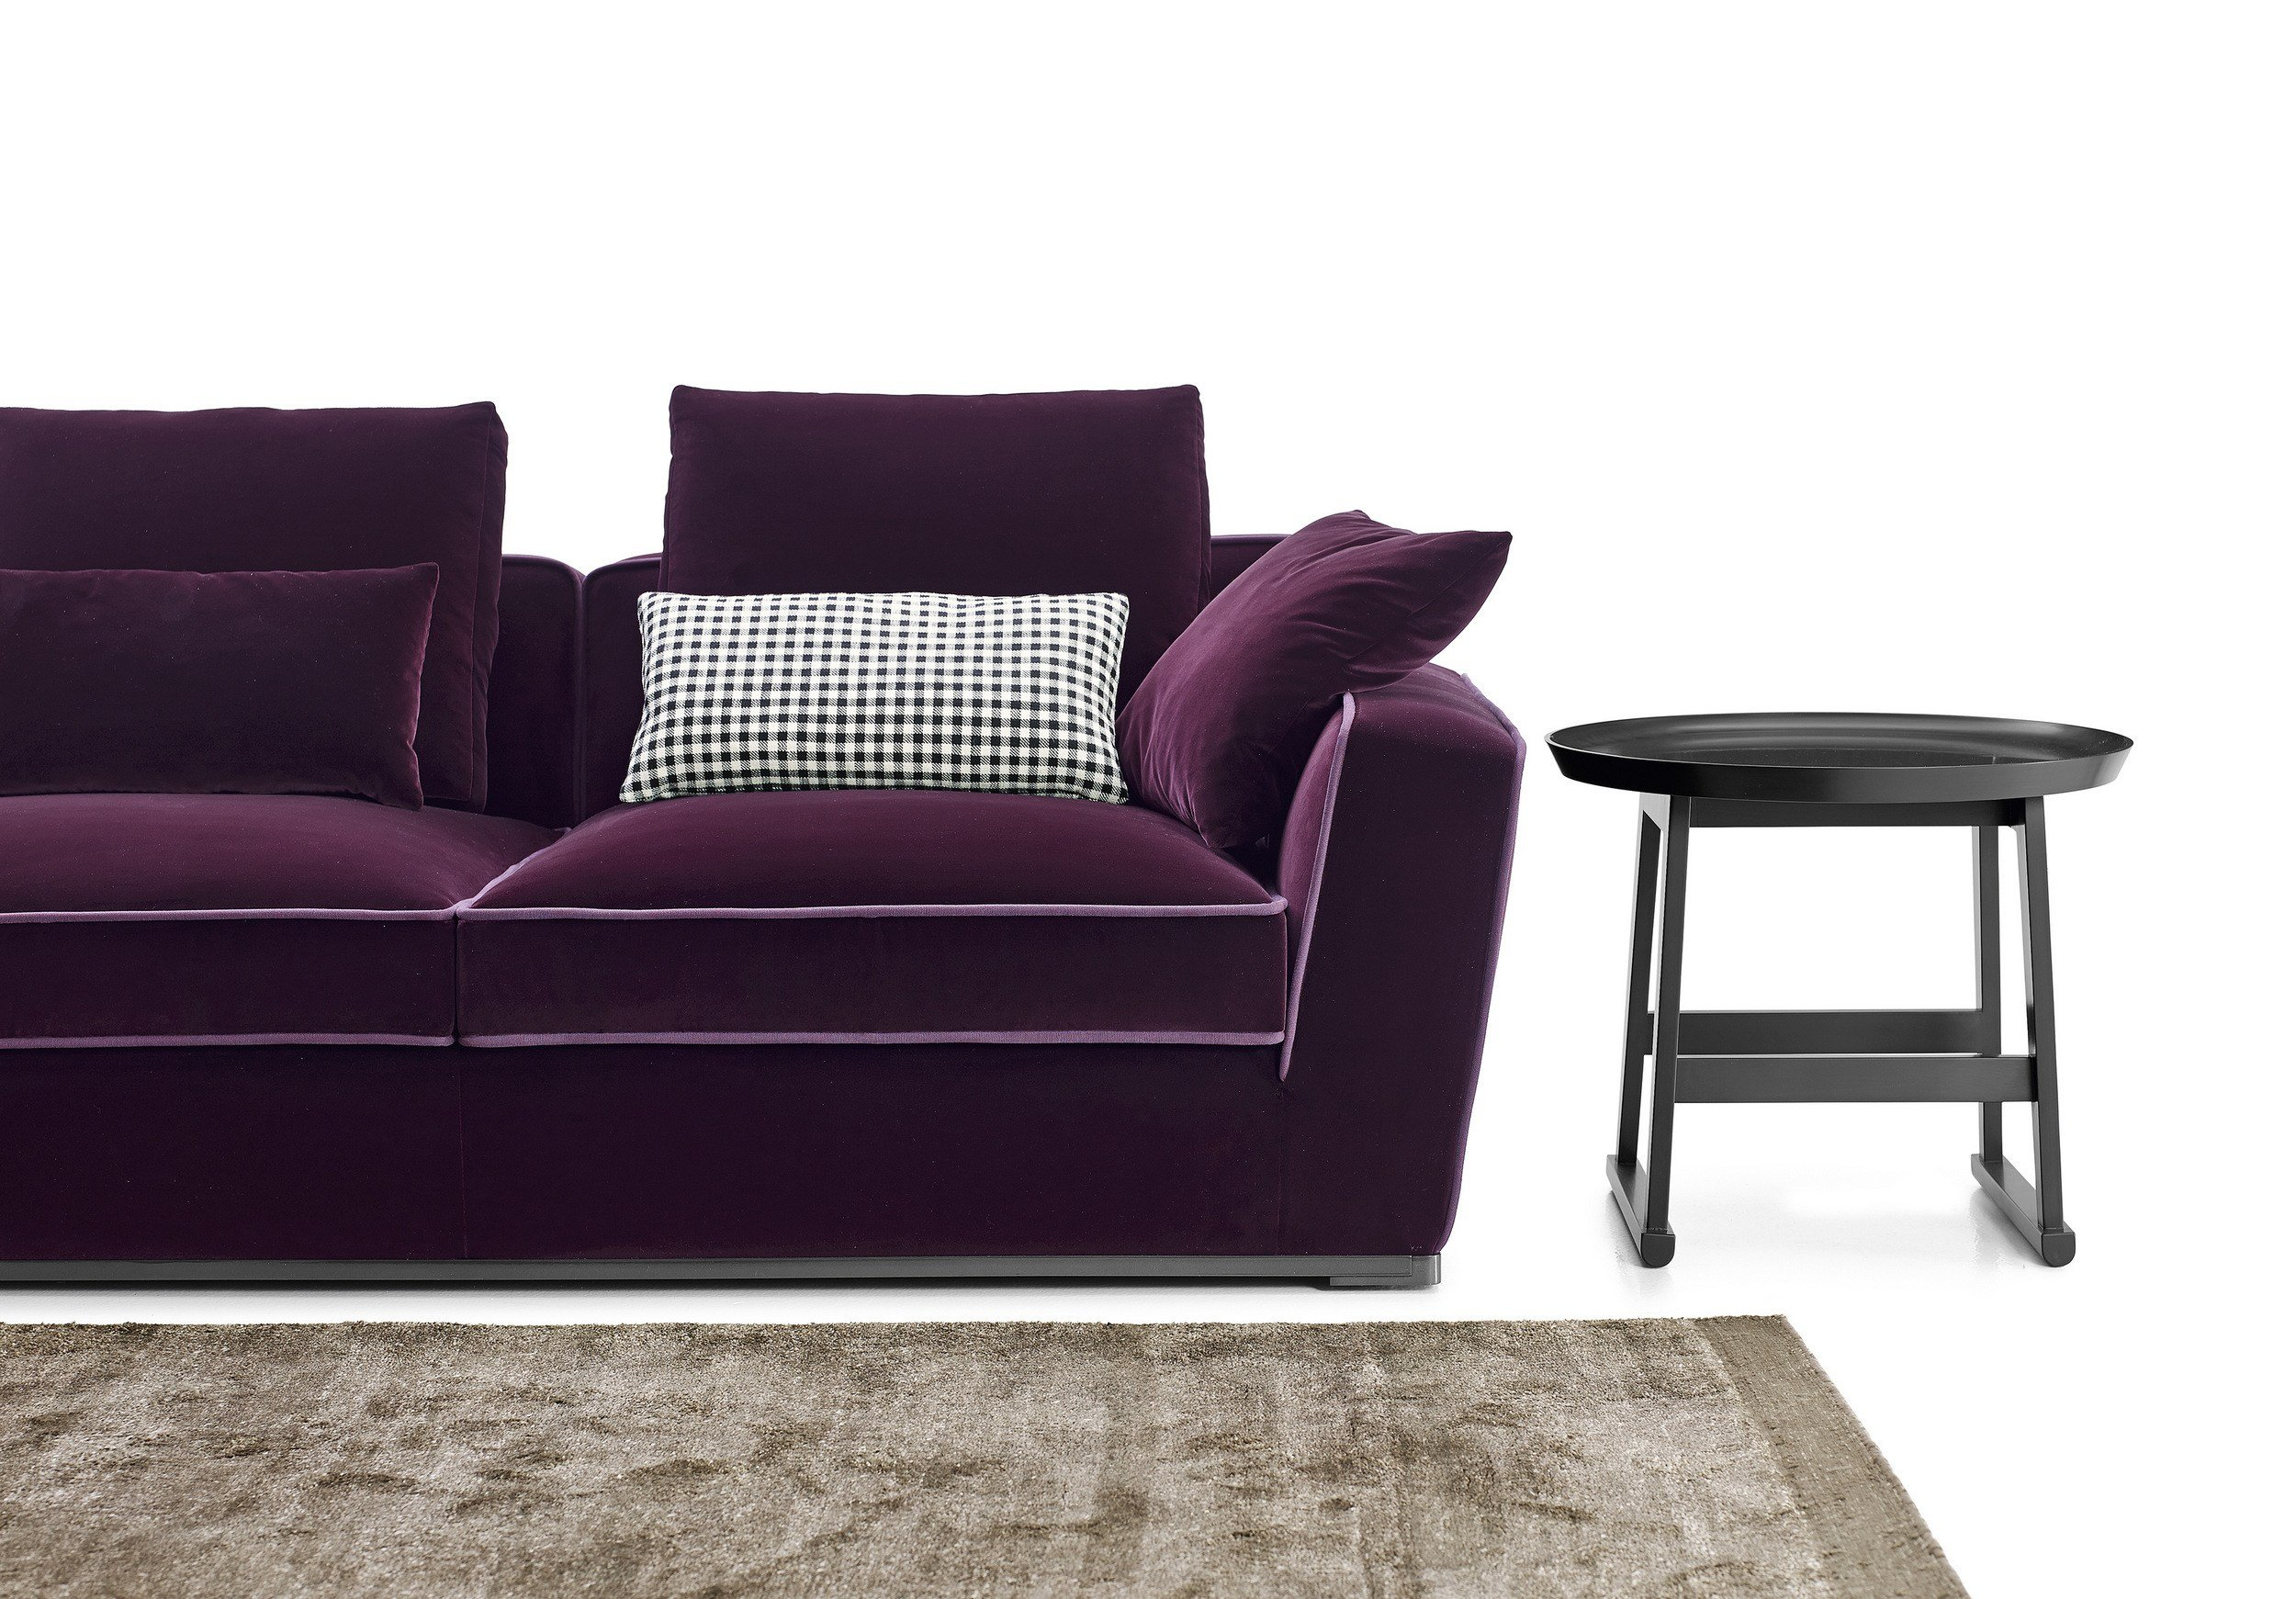 Solatium sofa with chaise longue solatium collection by for B b italia maxalto sofa